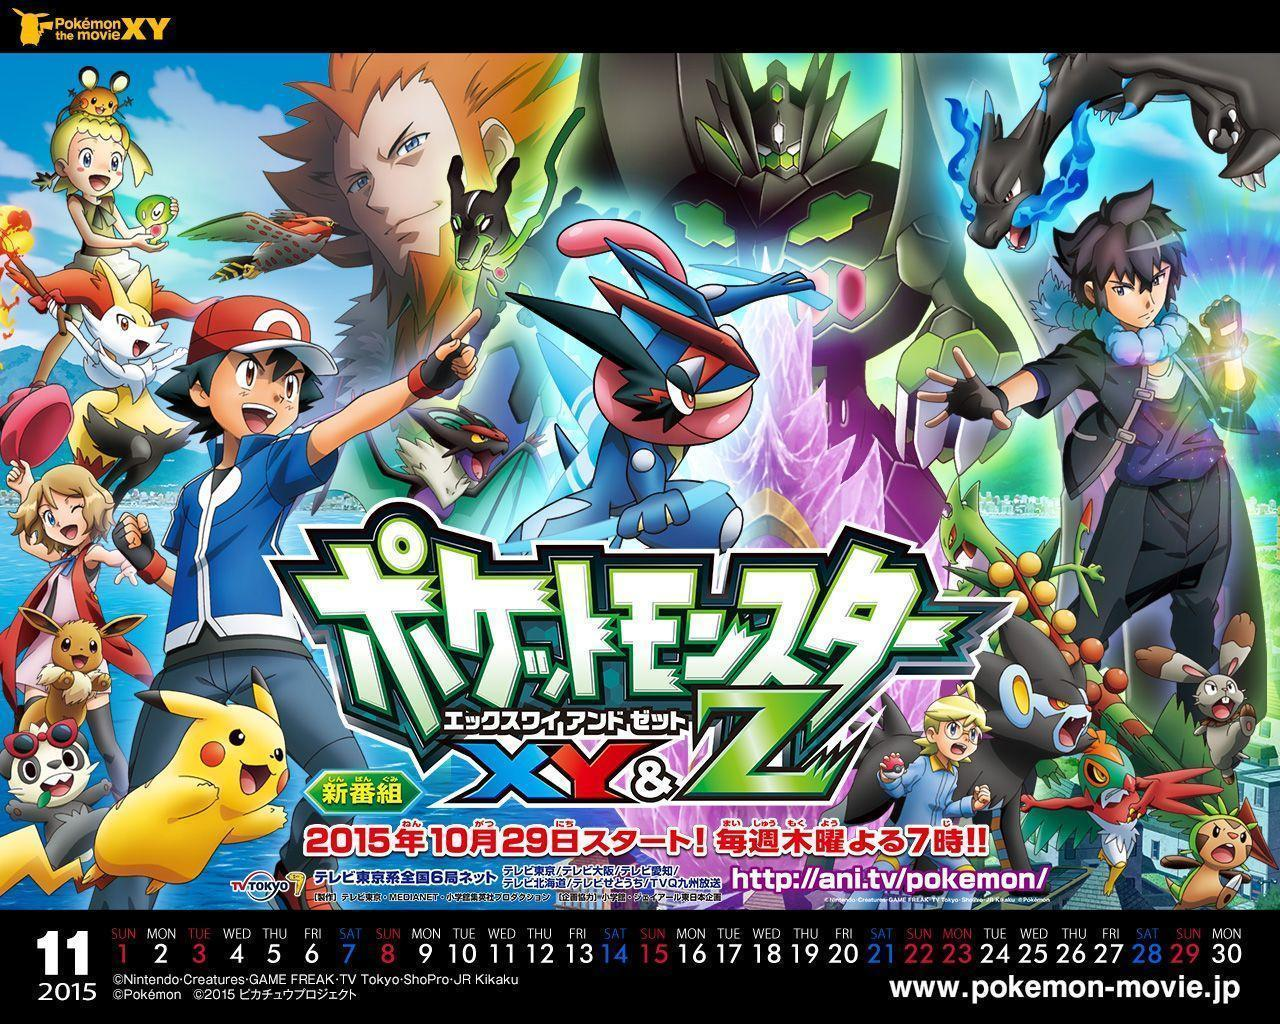 Pokémon Global News • November Calendar Based on Pokémon XY & Z